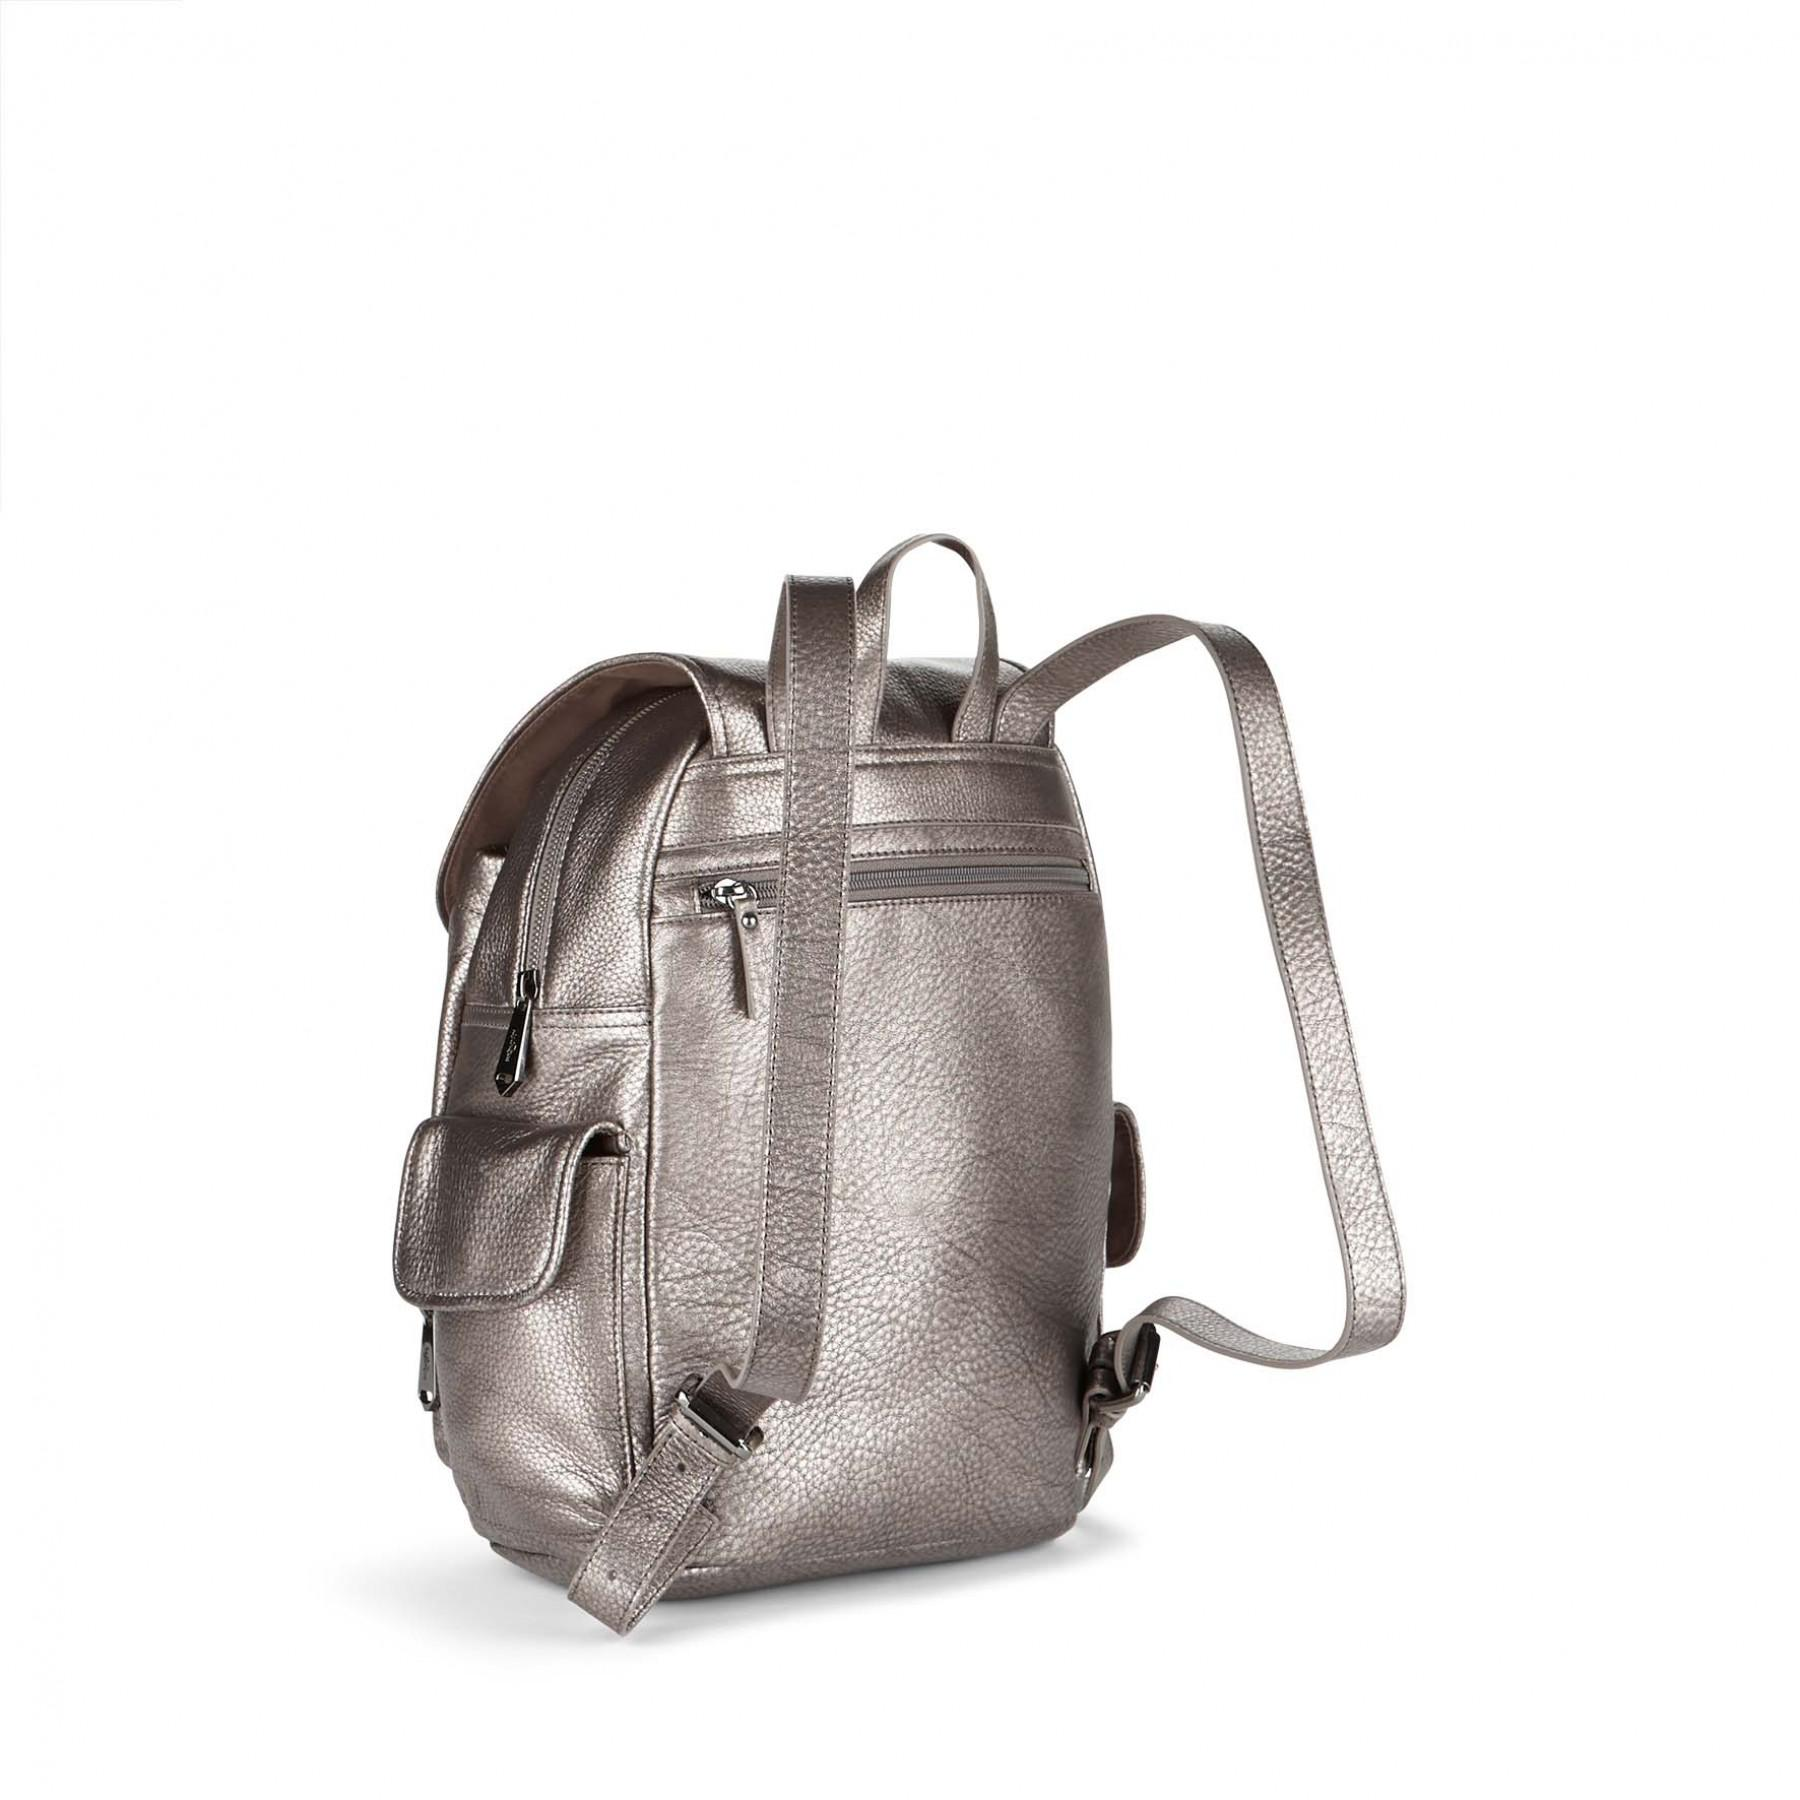 Kipling City Pack S Leather - Lyst 0f8982a038